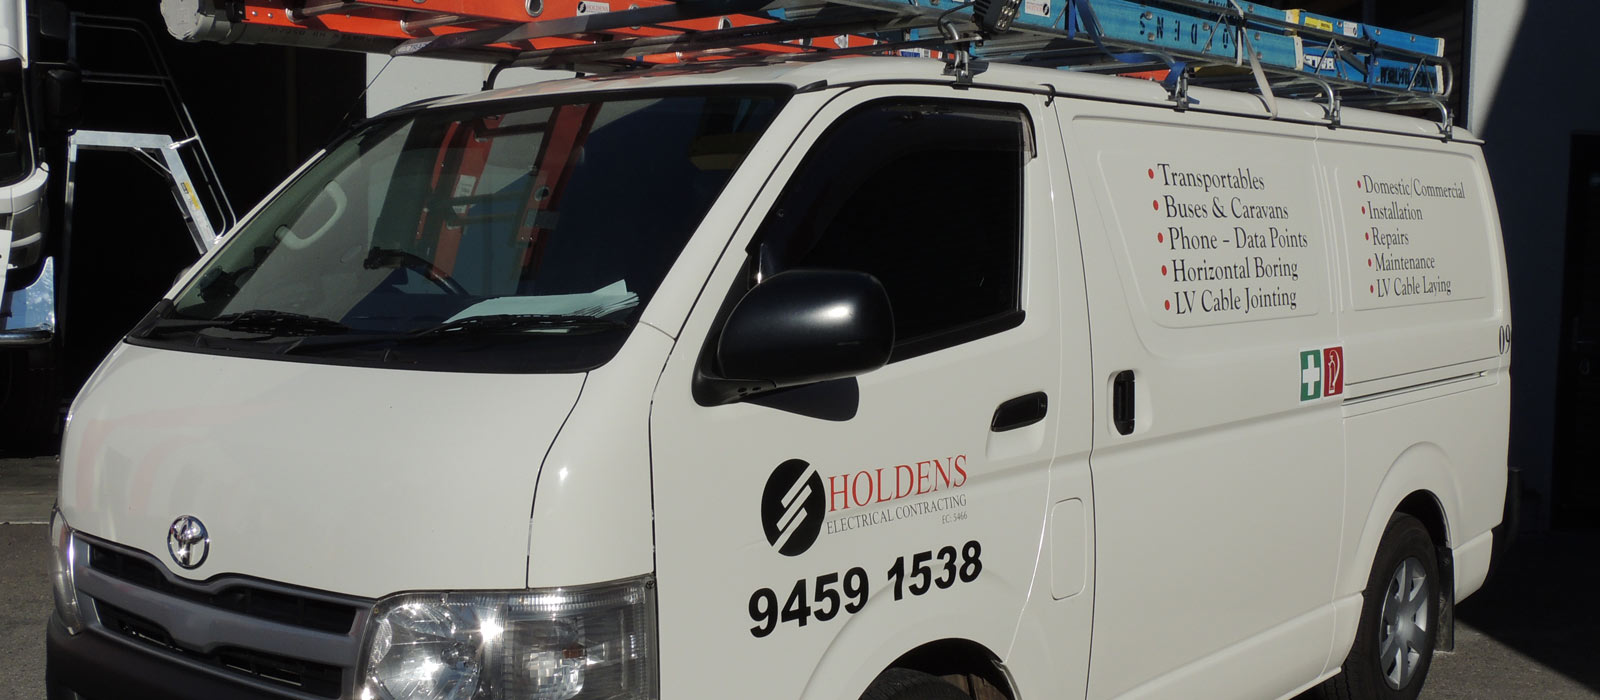 Our range of Perth electrical services will have you covered.